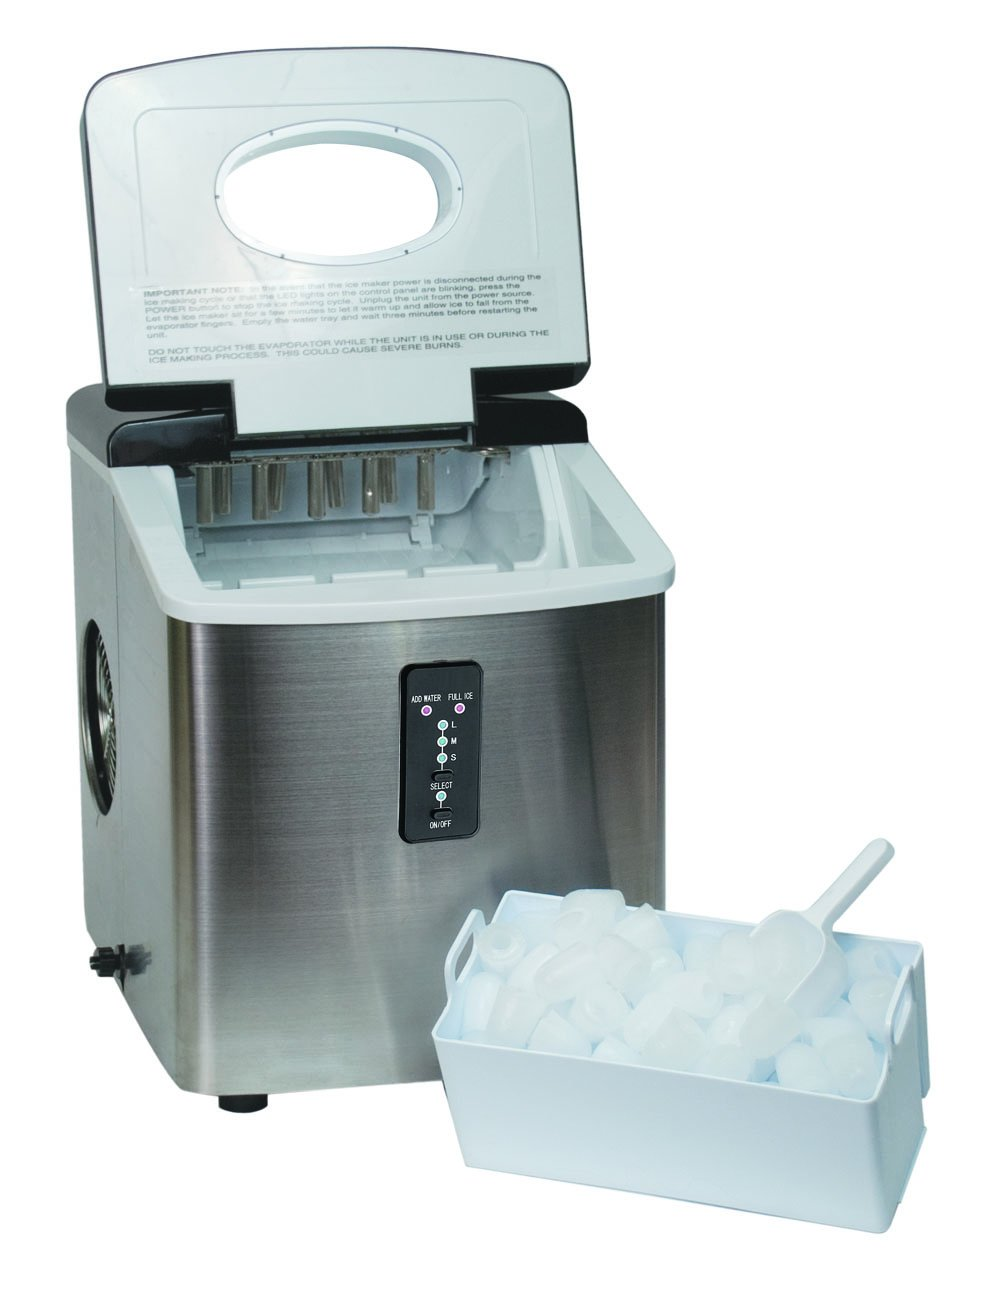 Galleon Igloo Ice103 Counter Top Ice Maker With Over